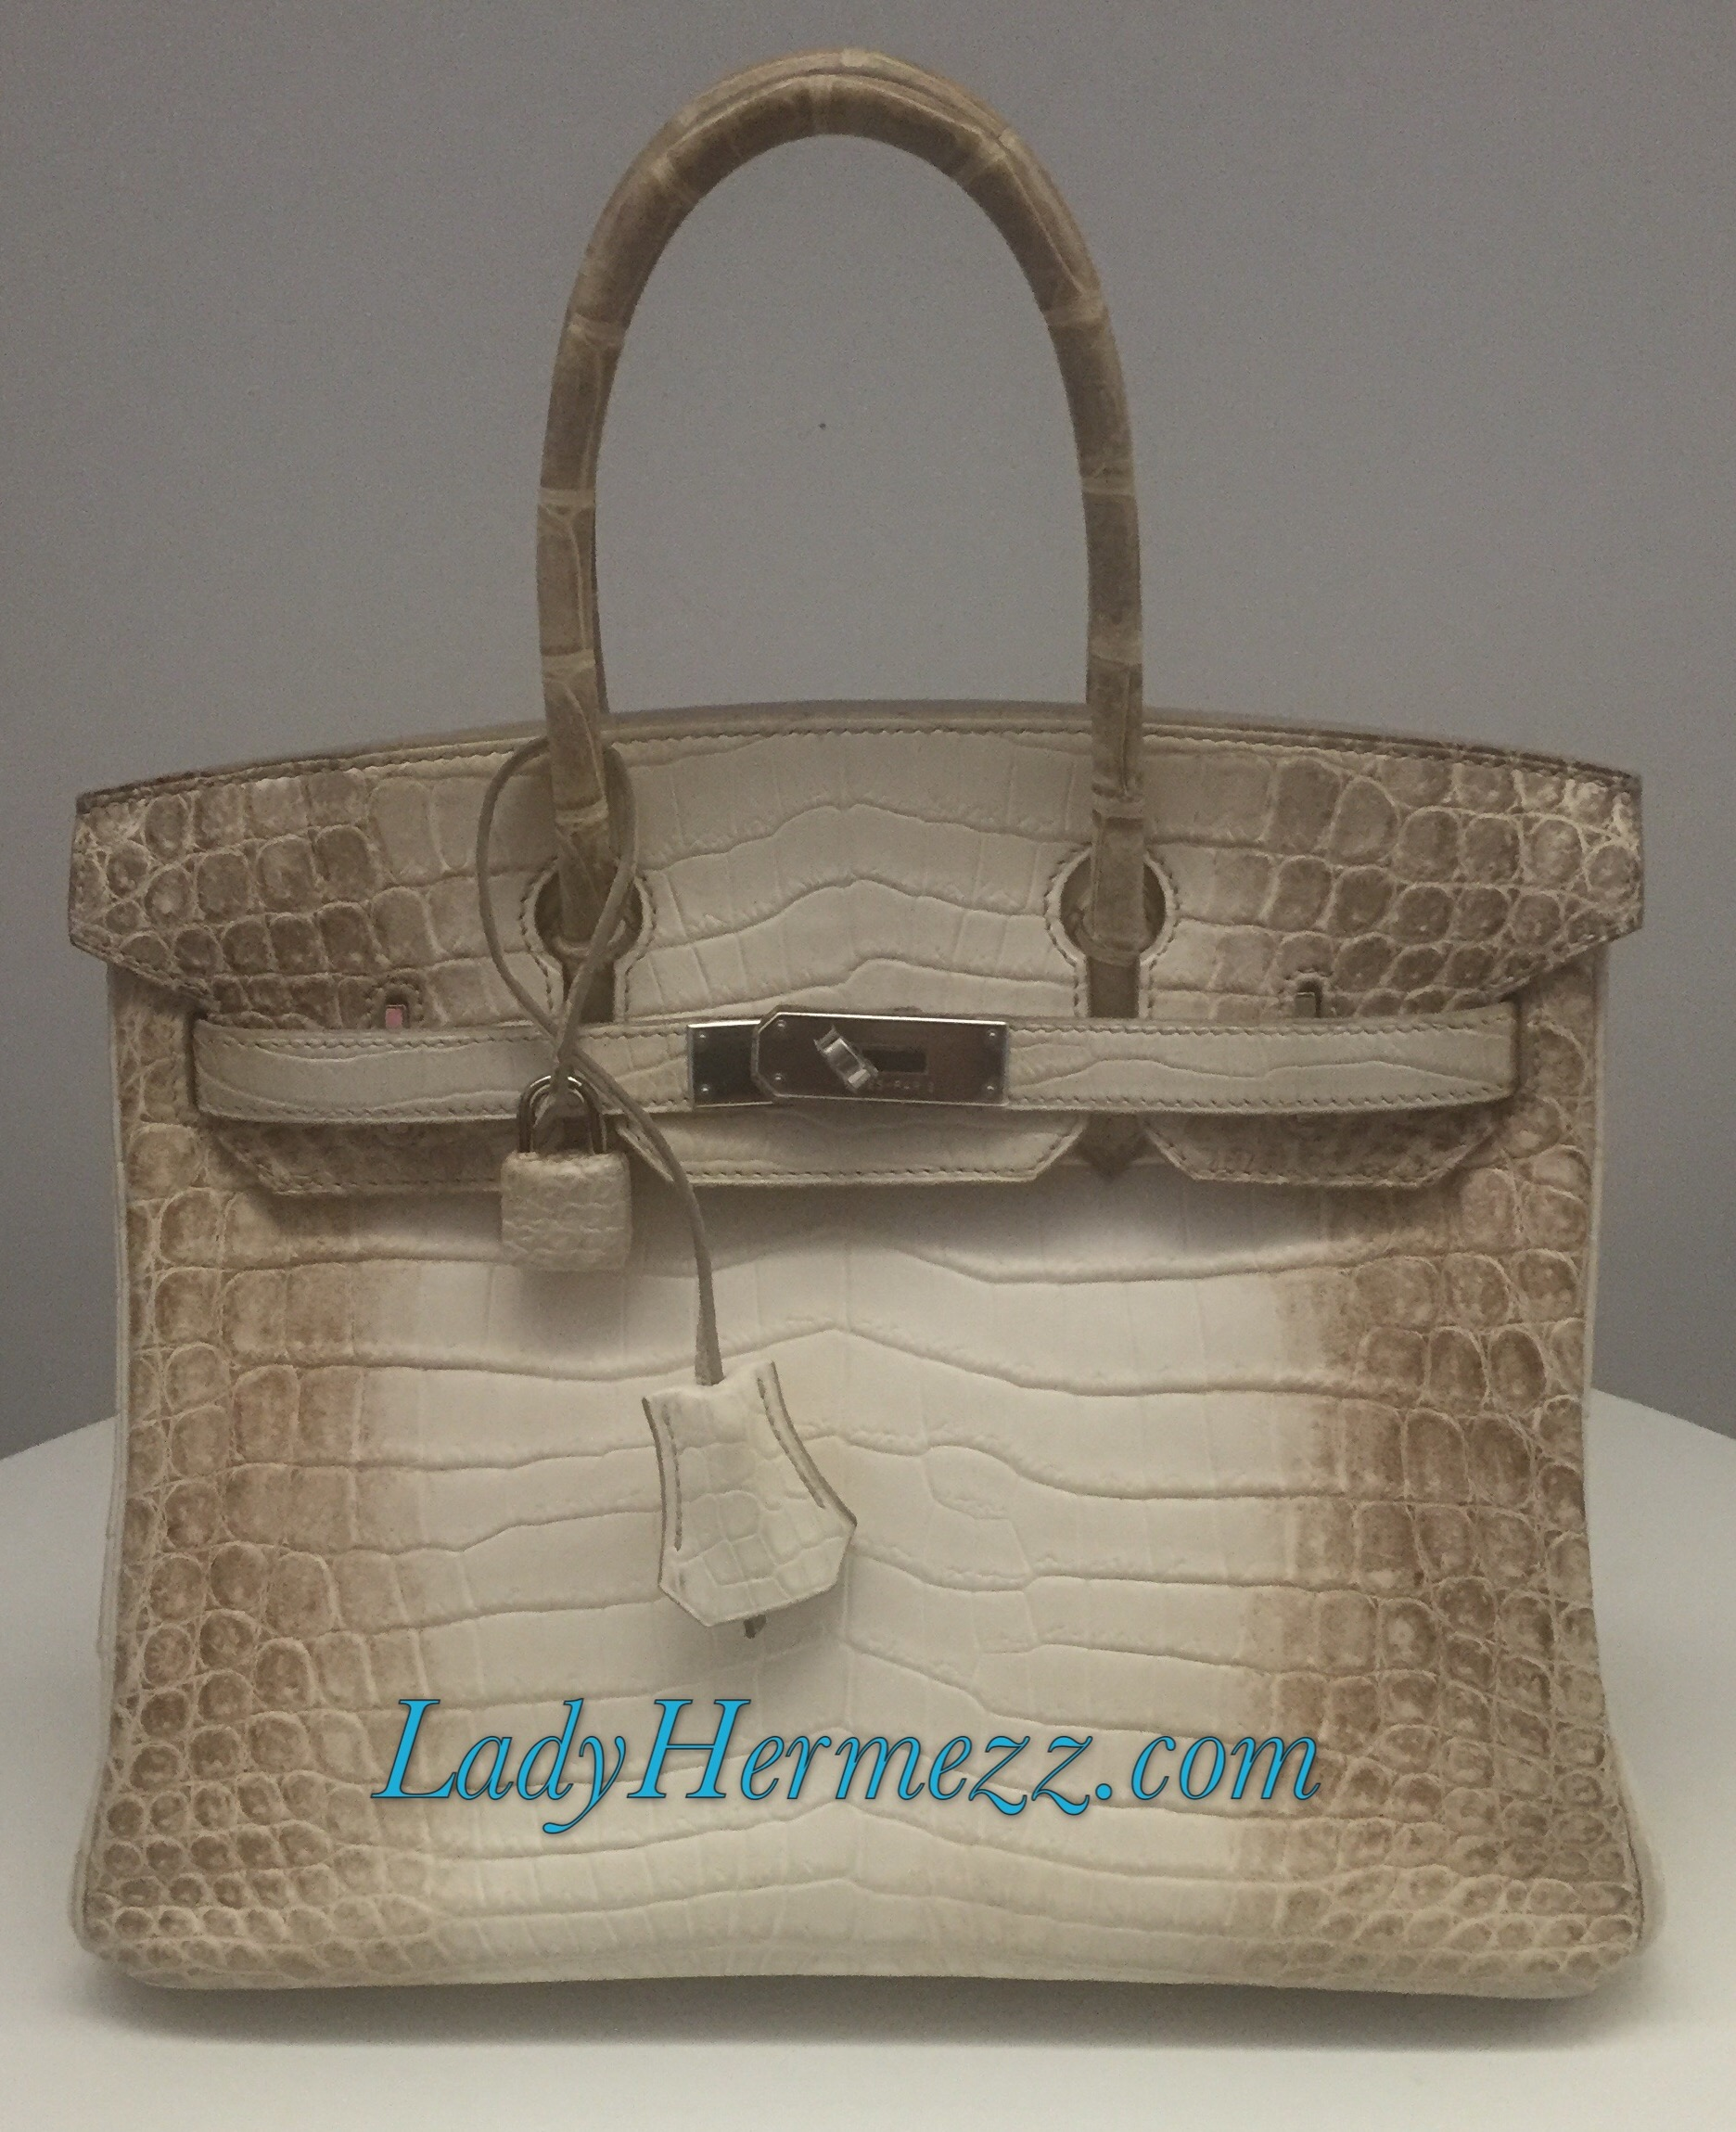 3eeac2e169b7 We are reducing the price of this beautiful pre-owned bag that has been  cleaned by Hermes and the hardware replaced. It s M stamp with the rare  brownish ...